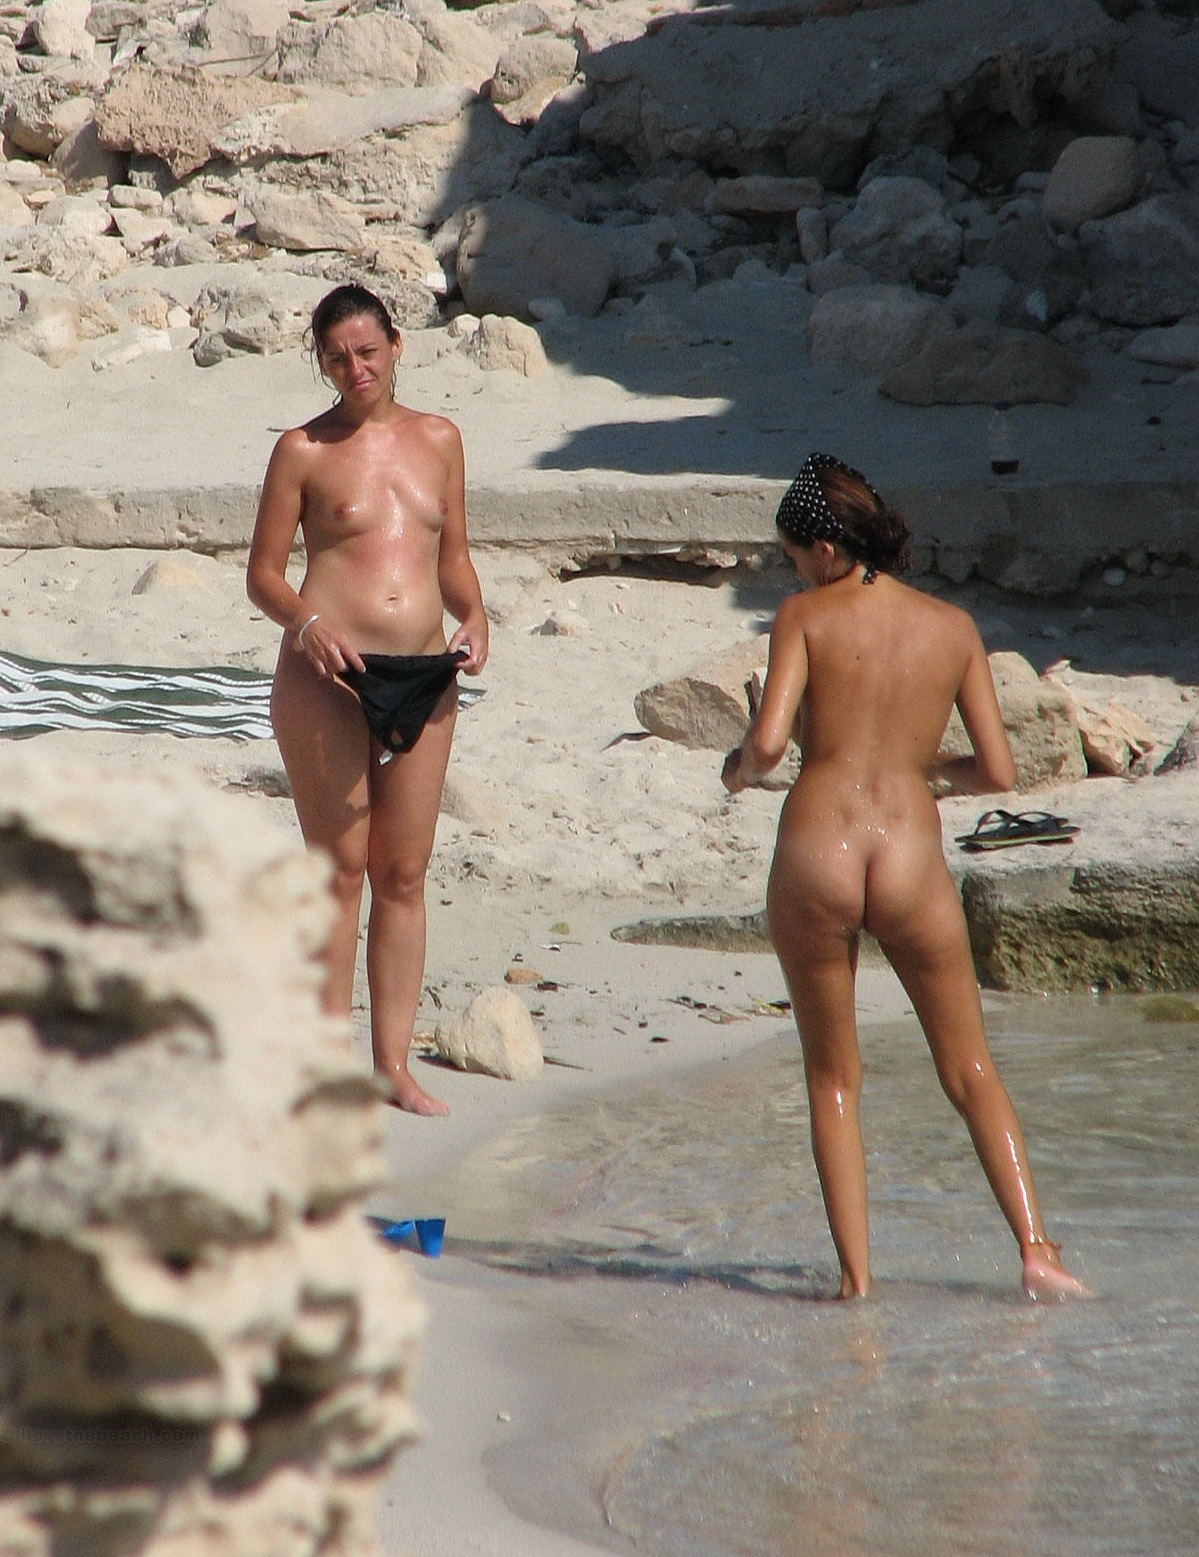 Two nudist girls that are going into the water are voyeurs target